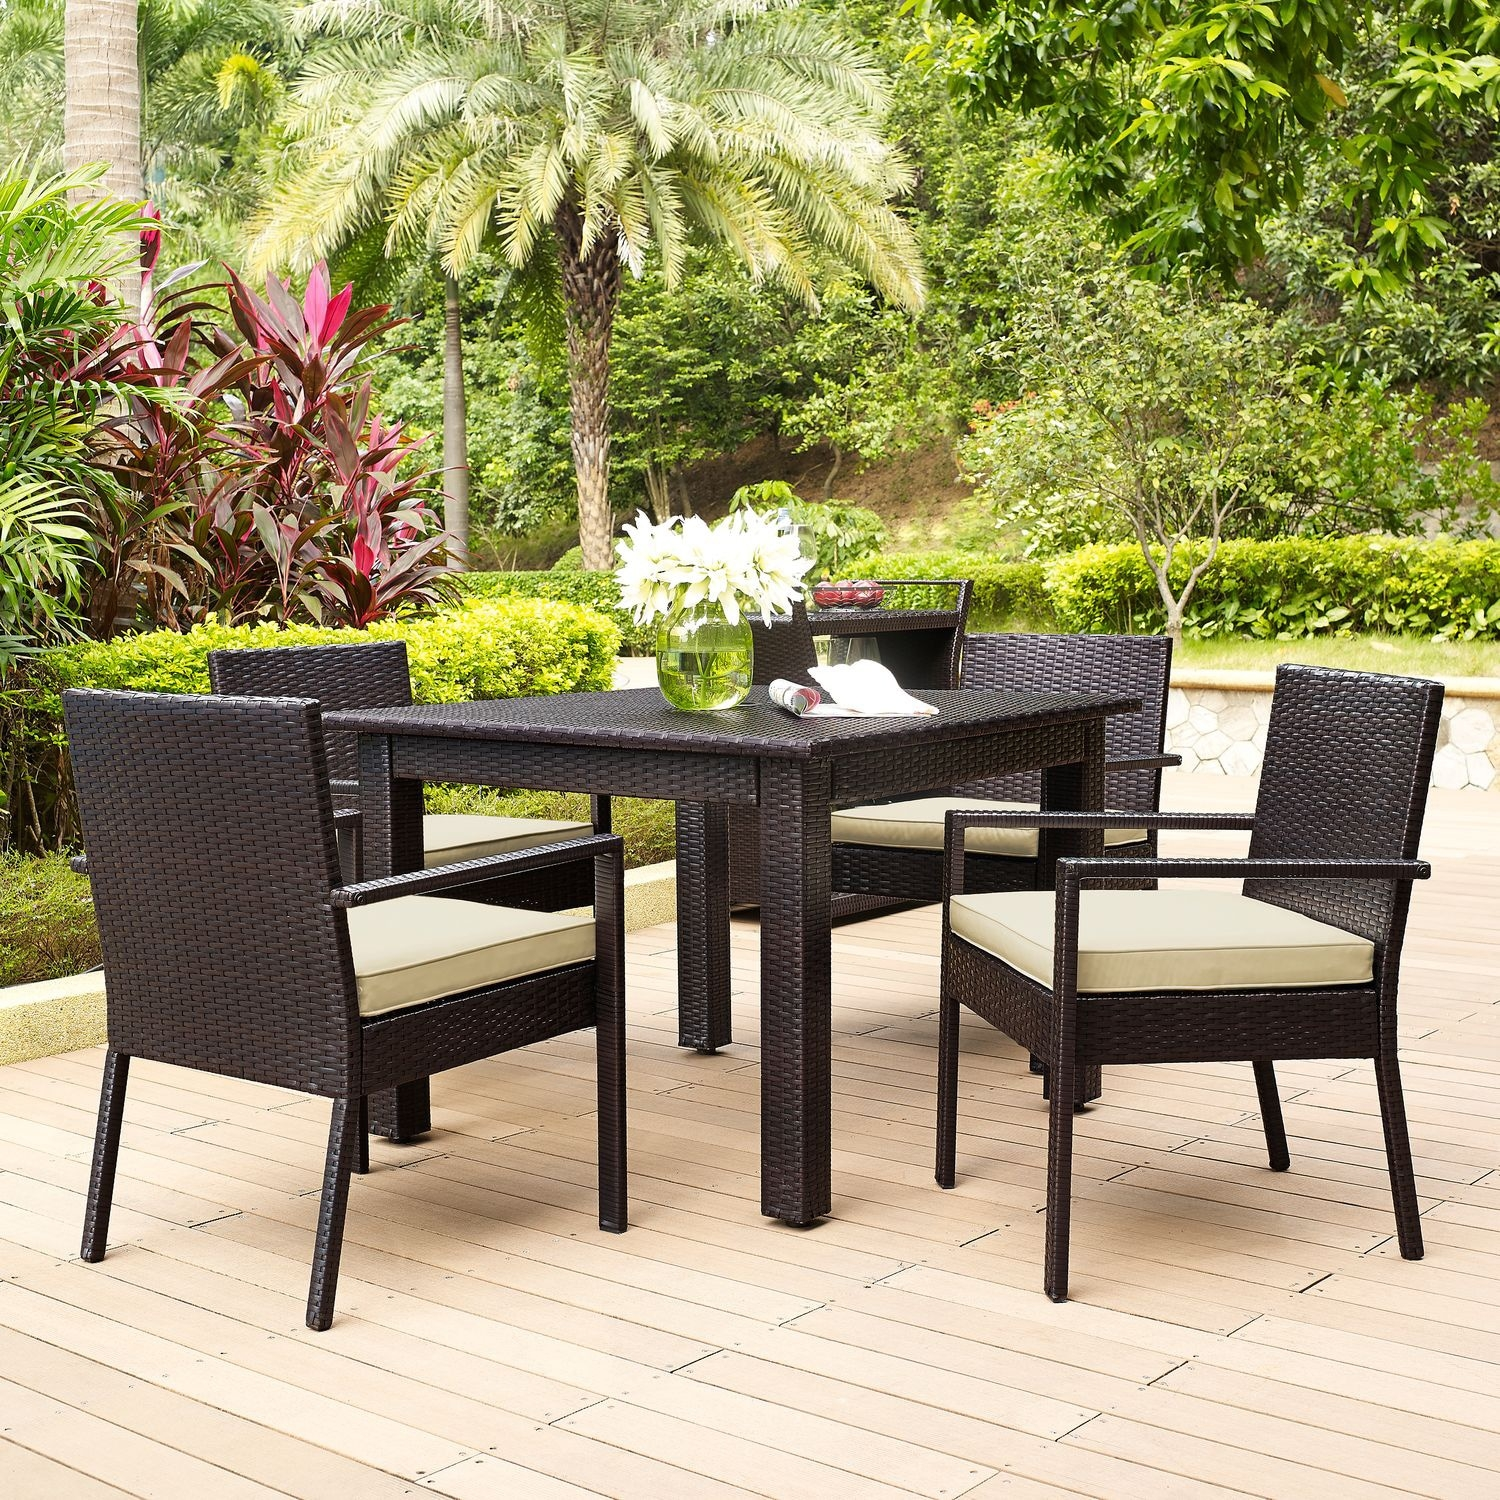 Aldo Outdoor Table And 4 Arm Chairs Set Brown Value City